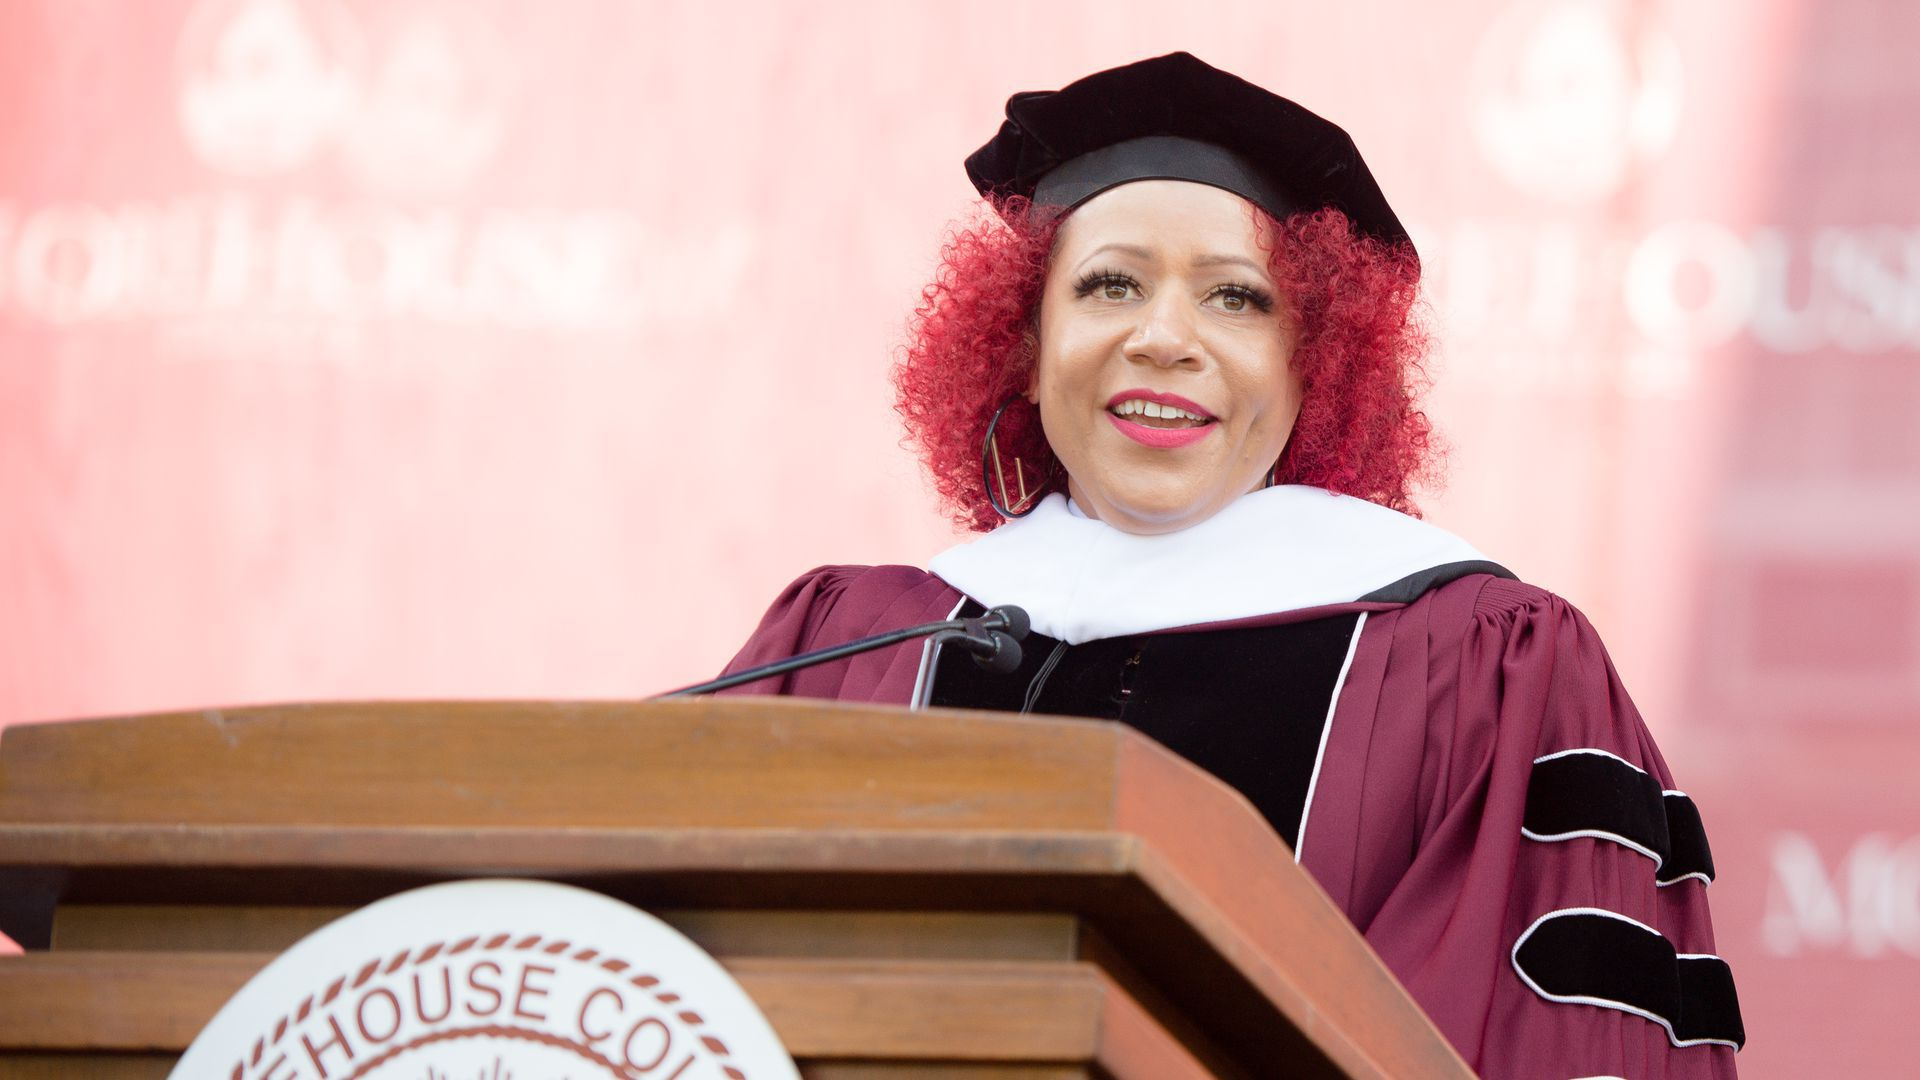 Journalist Nikole Hannah-Jones wears a cap and gown and speaks at a podium